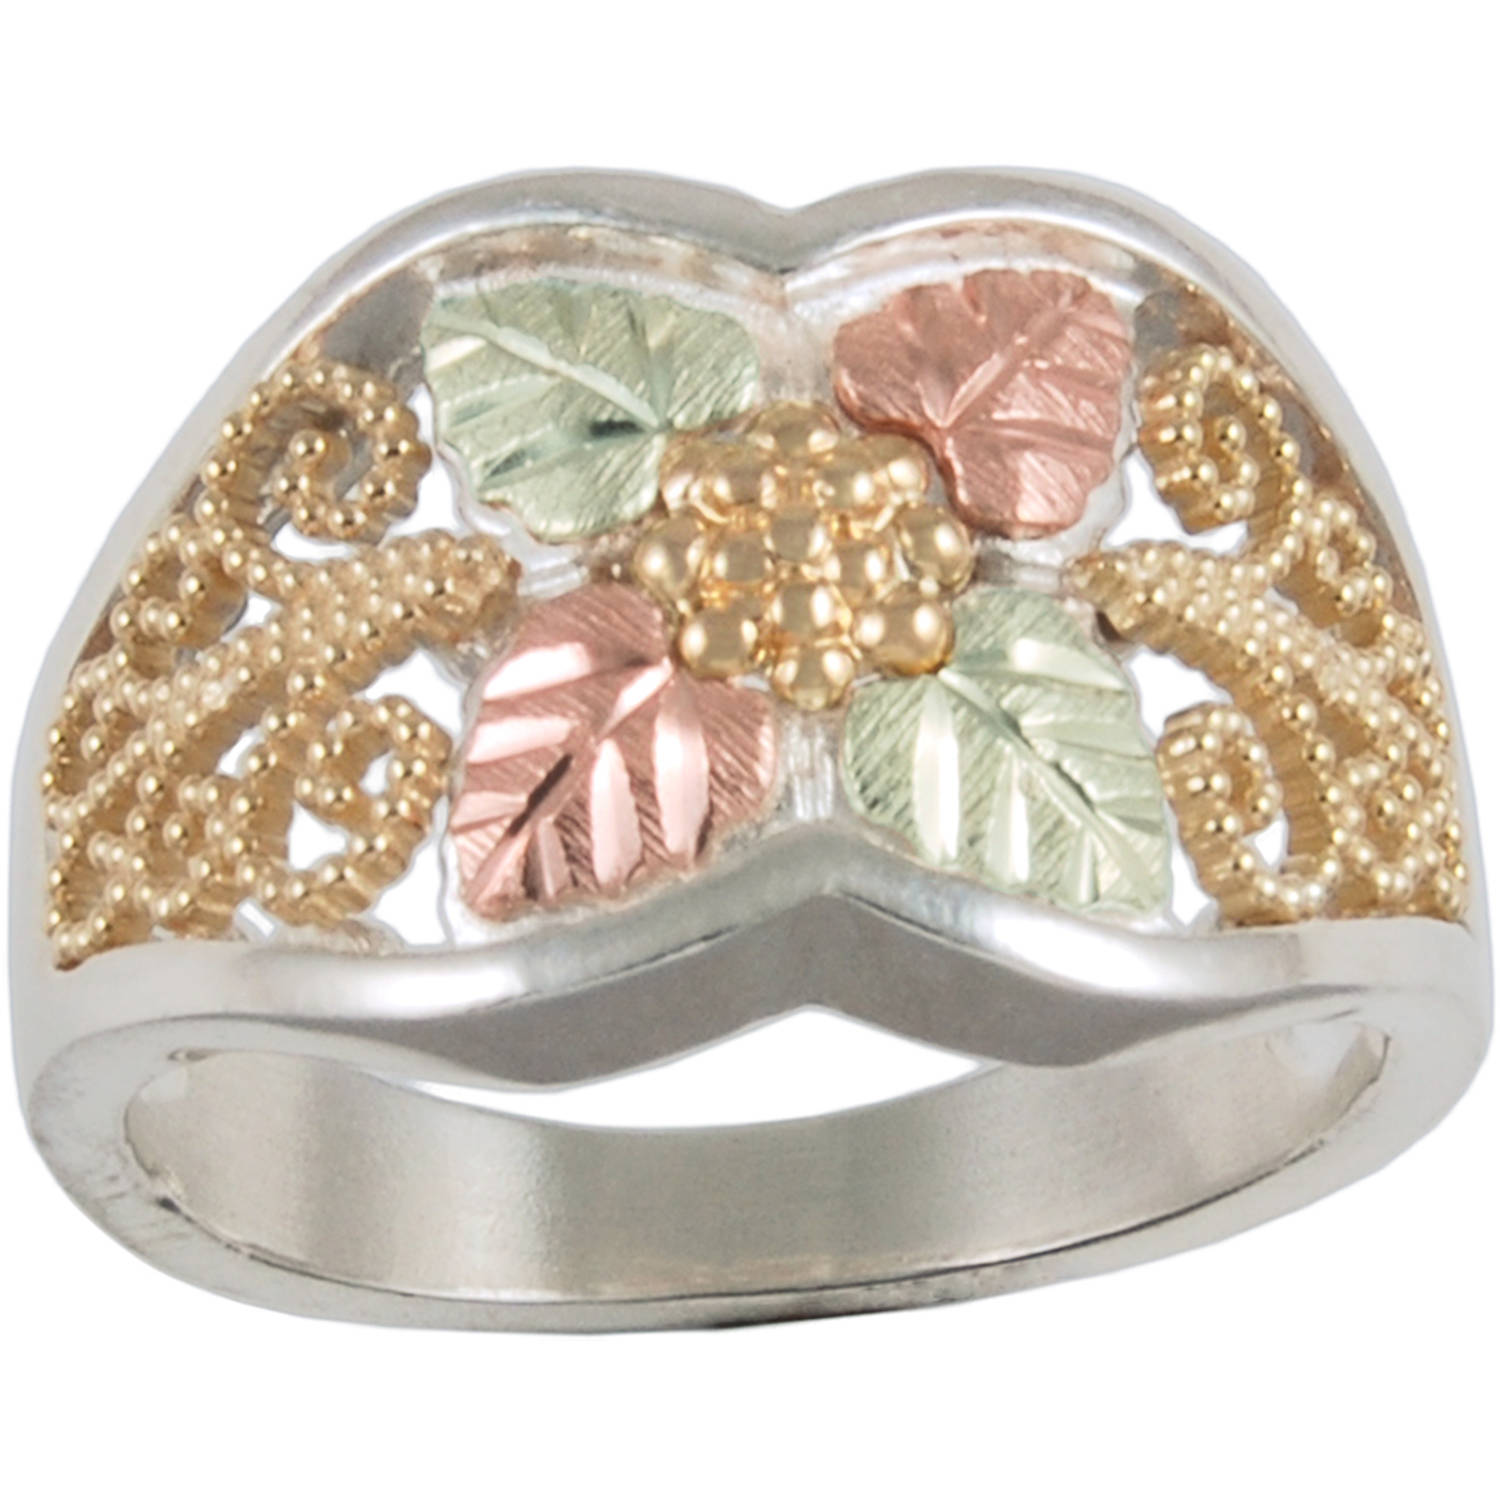 Black Hills Gold Women's Sterling Silver 10kt and 12kt Gold Accented Filigree Ring